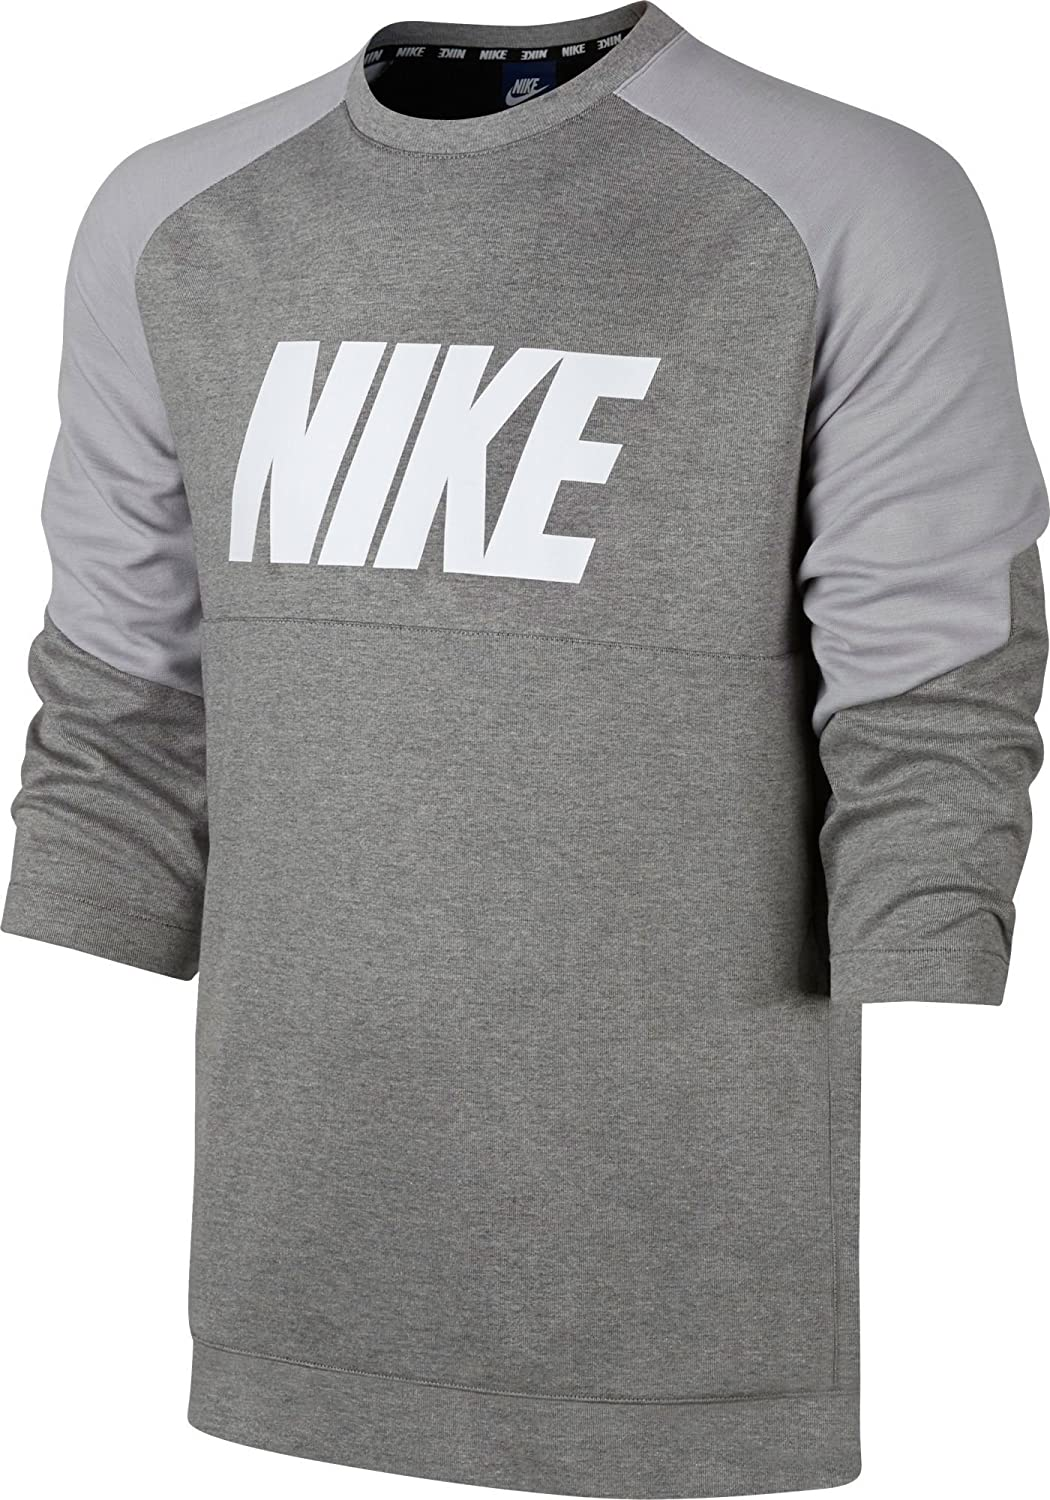 nike shirt advanced 15